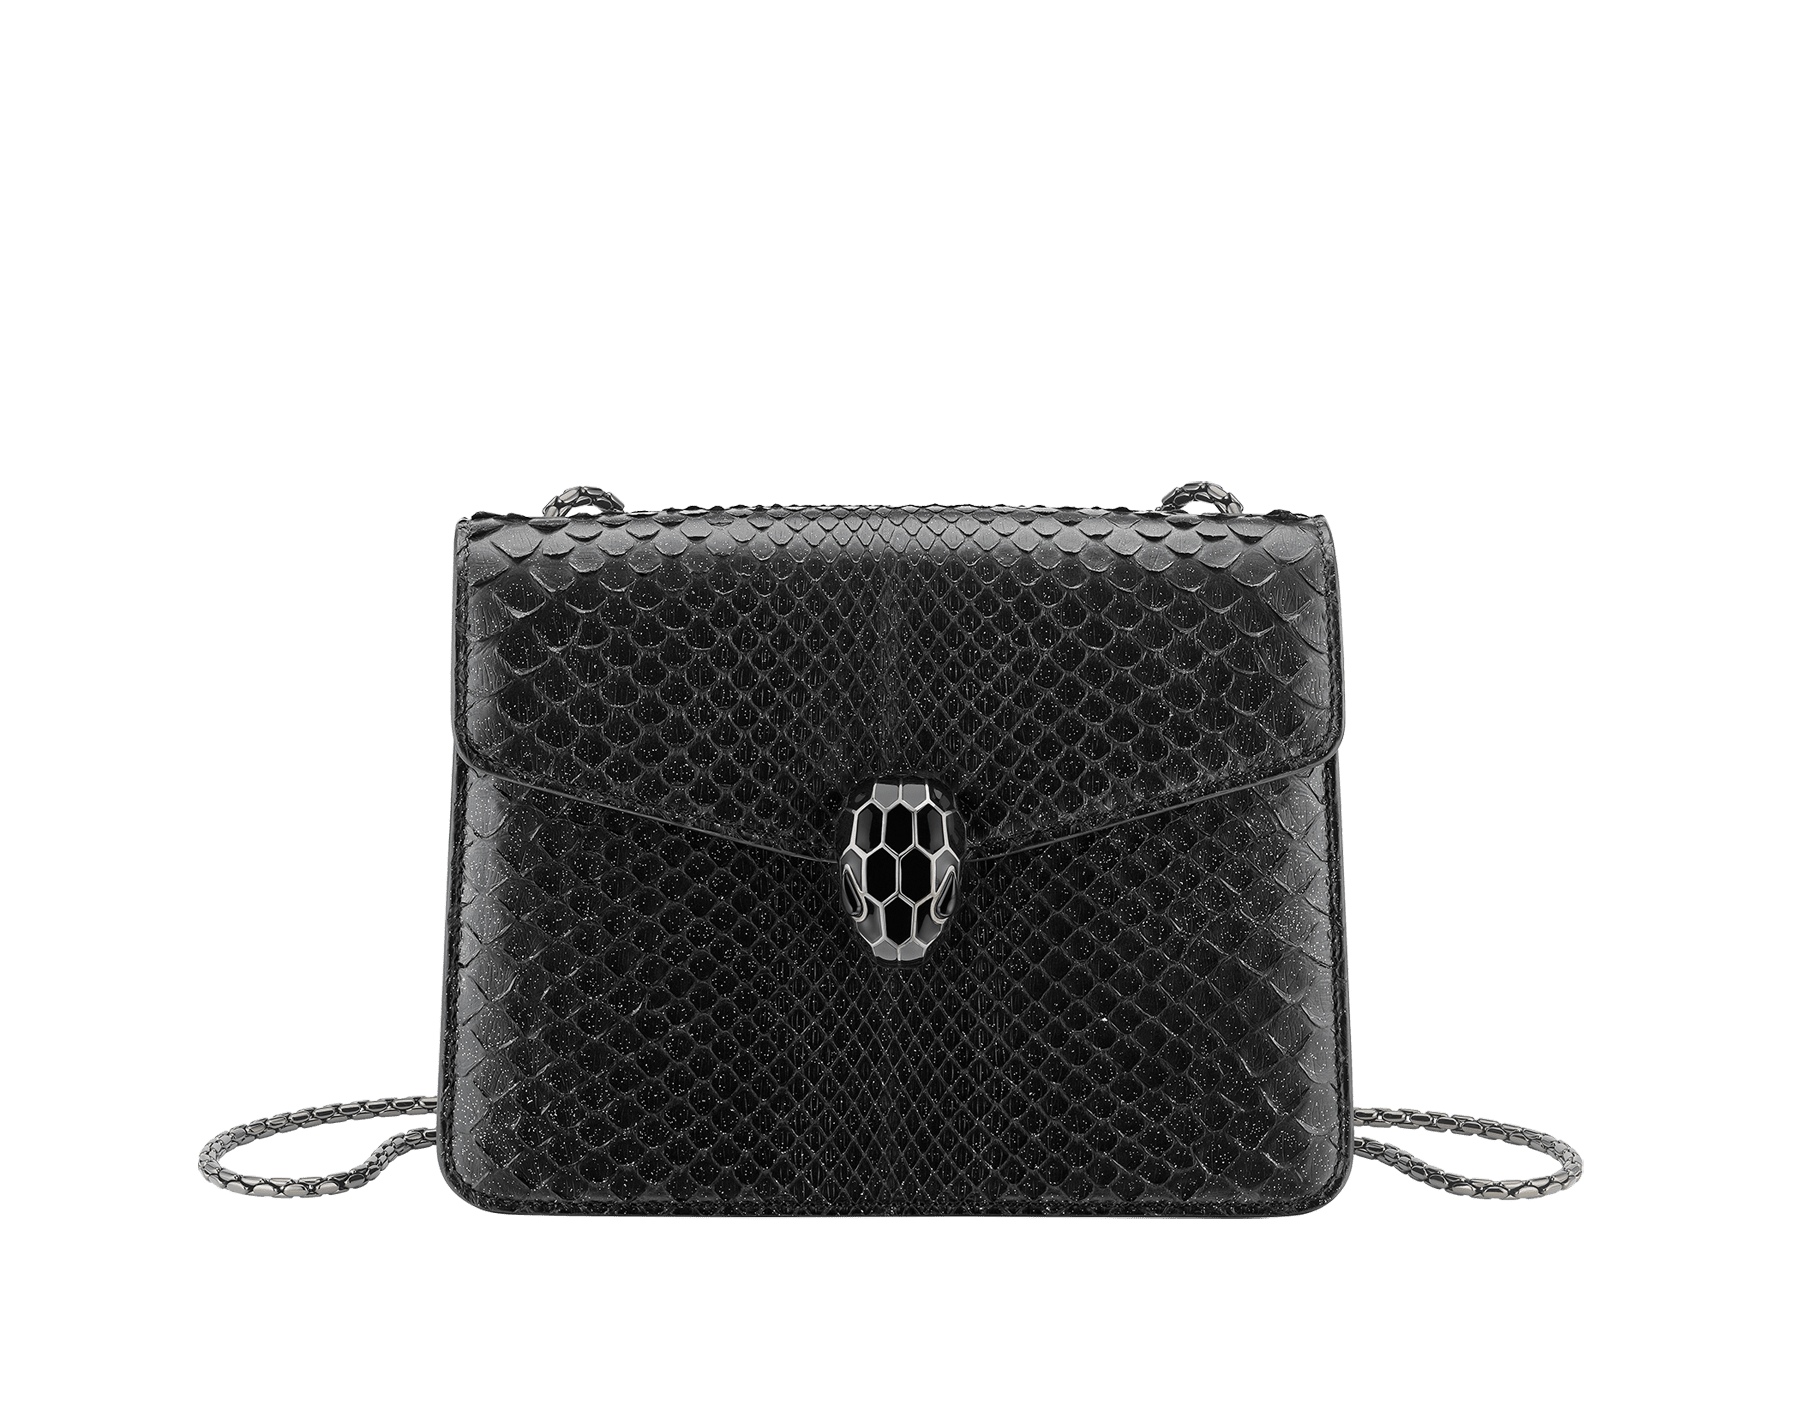 """Serpenti Forever"" crossbody bag in black Diamond Glam python skin. Iconic snake head closure in dark ruthenium plated brass enriched with black enamel and black onyx eyes. 288869 image 1"